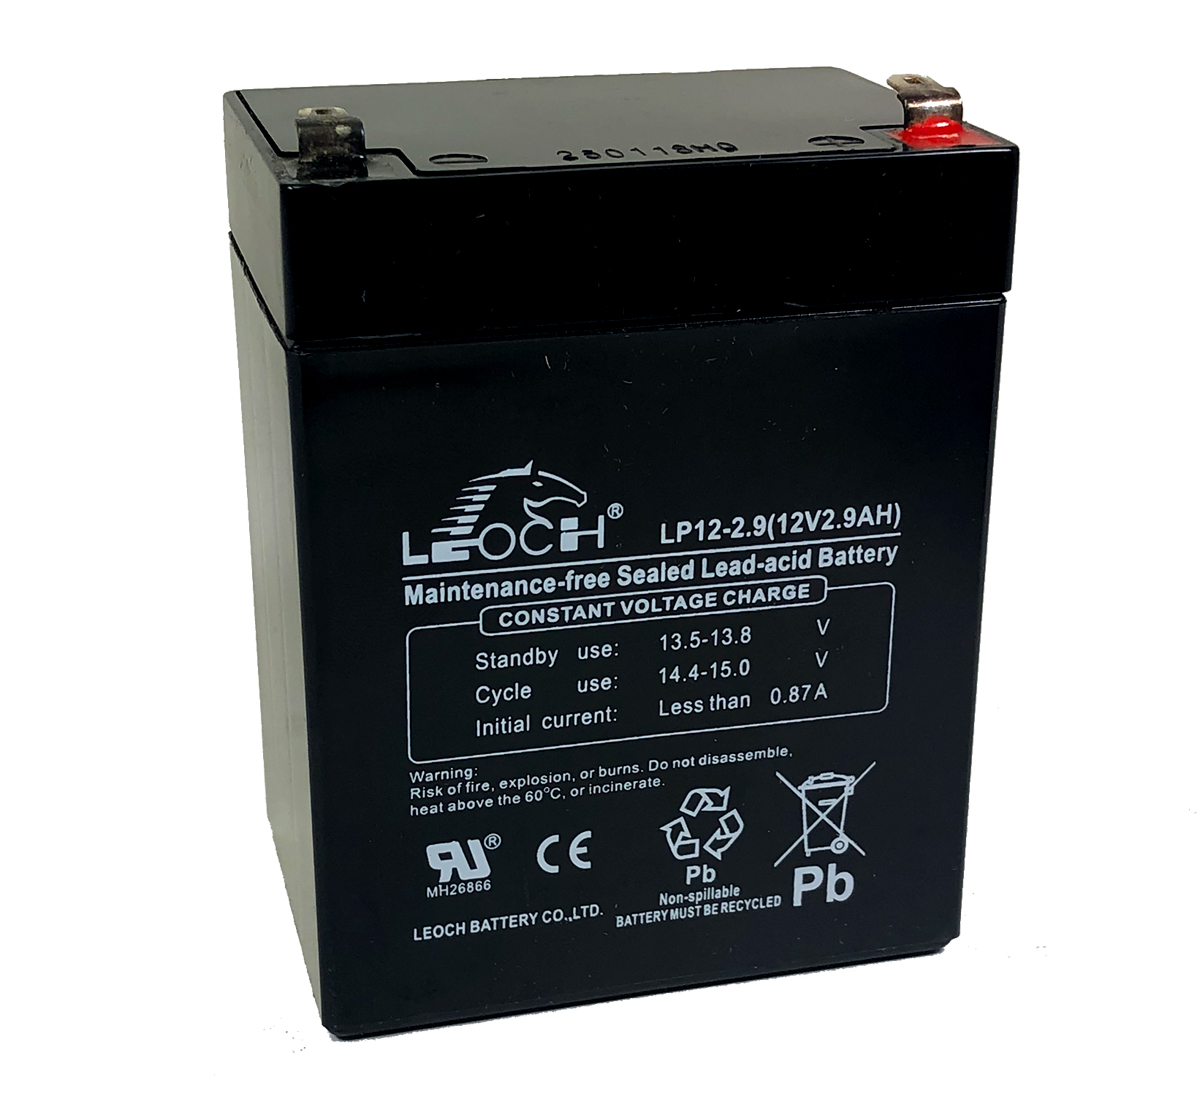 Leoch LP12-2.9 12V 2.9Ah Lead Acid Battery